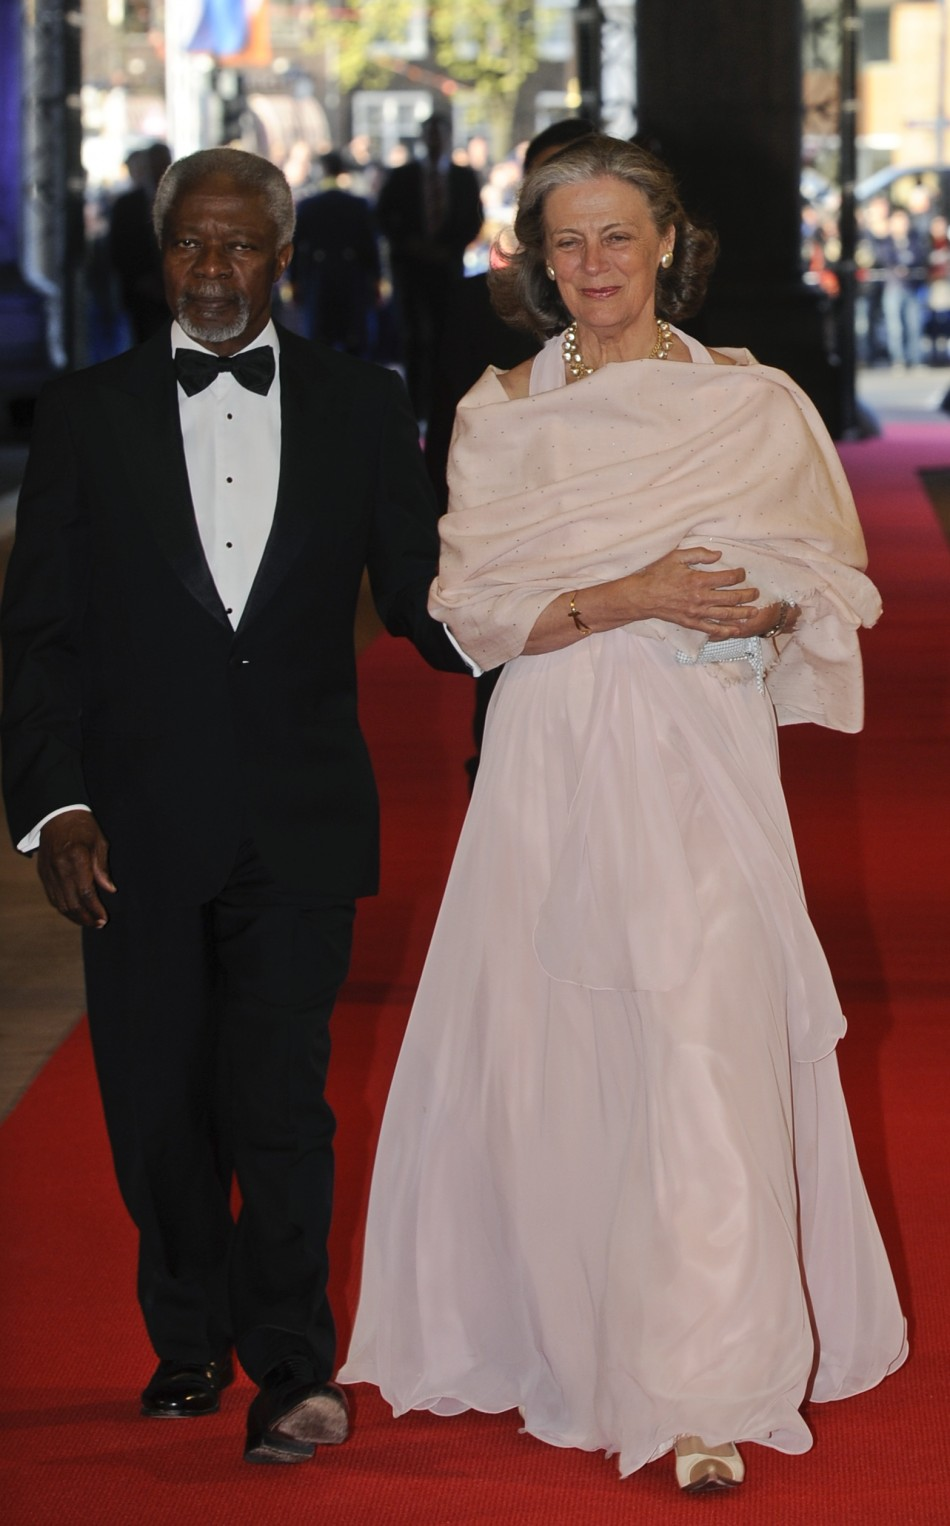 Former U.N. Secretary-General Kofi Annan and his wife Nane R arrive at a gala dinner organised on the eve of the abdication of Queen Beatrix of the Netherlands and the inauguration of her successor King Willem-Alexander at the Rijksmuseum in Amsterdam A